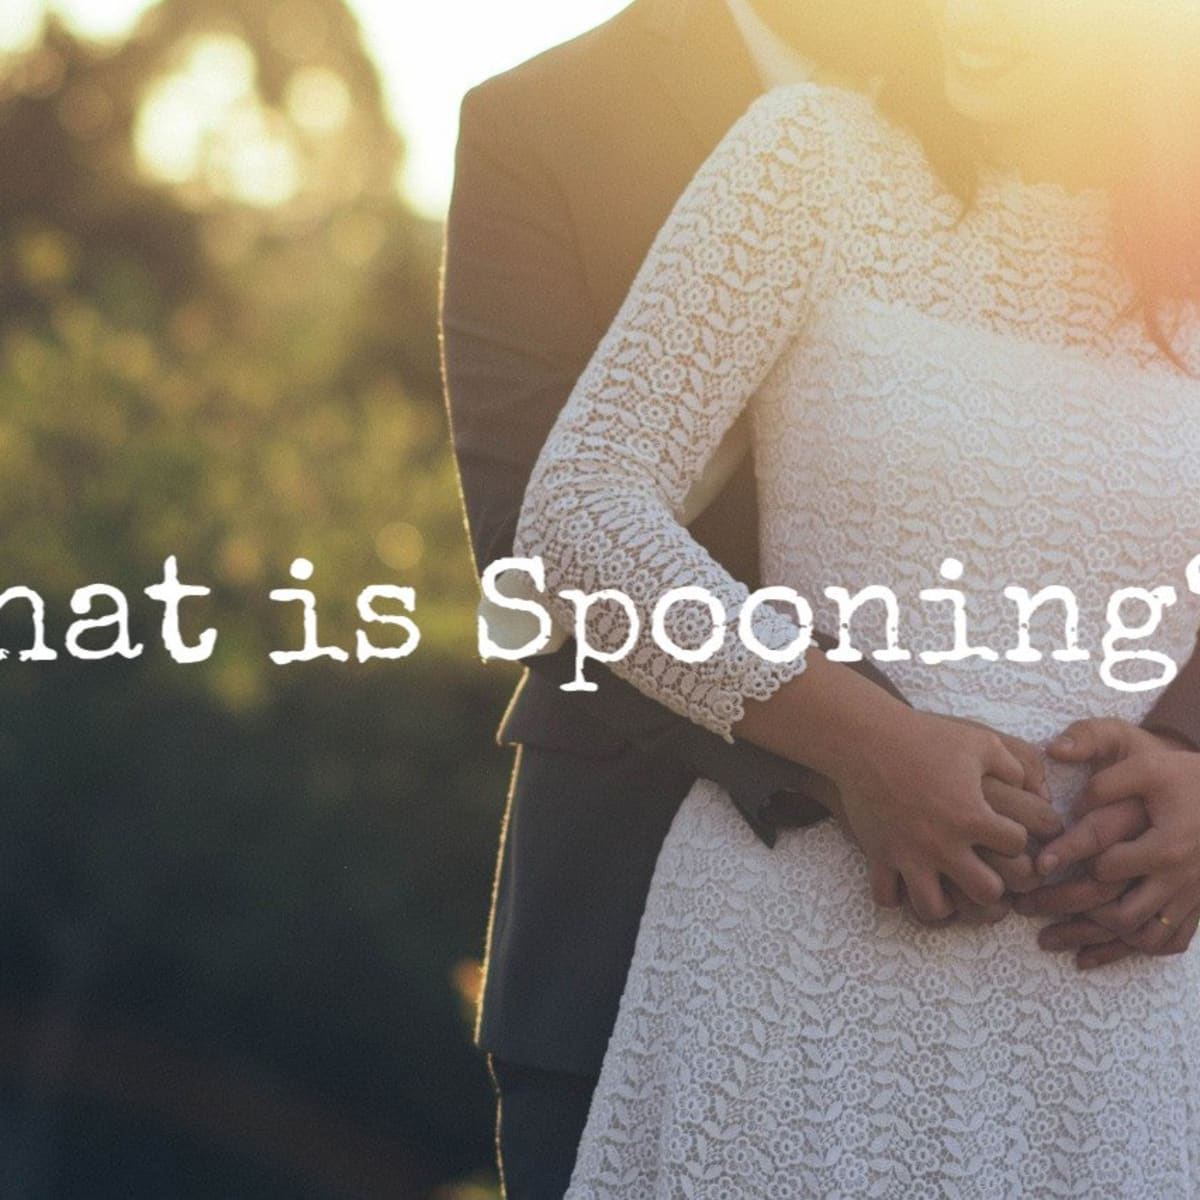 What does spooning someone mean